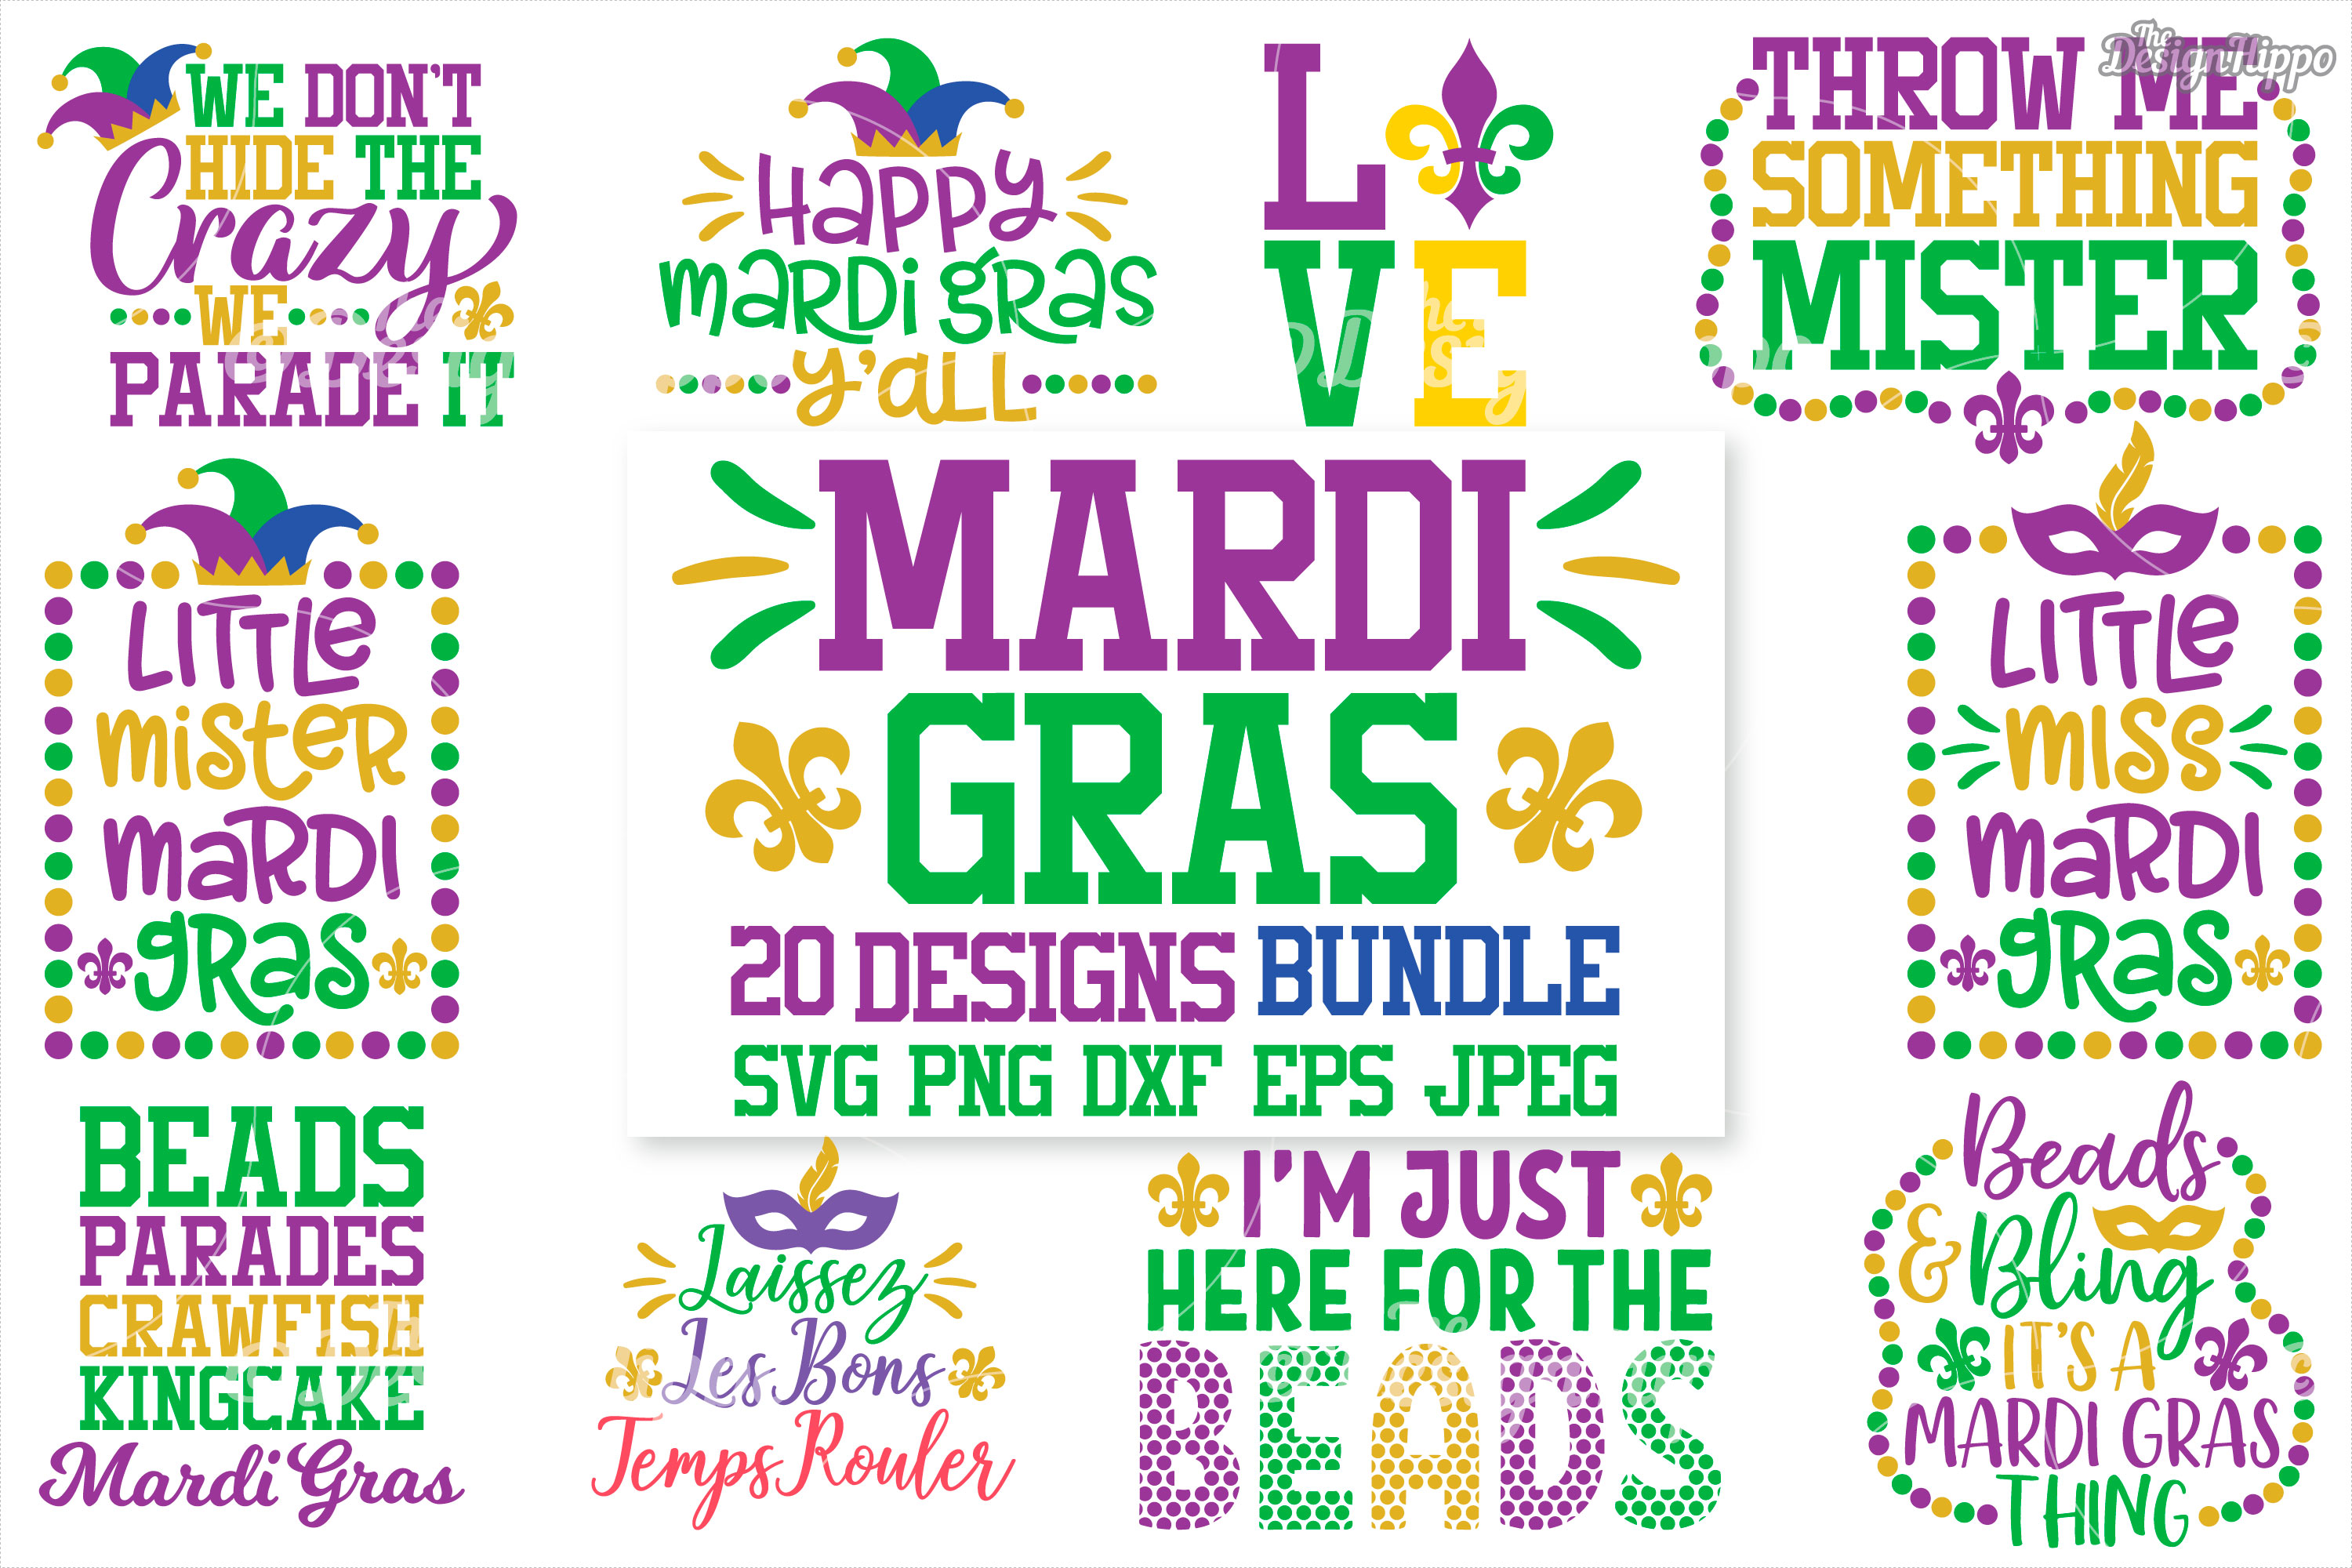 Download Free Mardi Gras Bundle Graphic By Thedesignhippo Creative Fabrica for Cricut Explore, Silhouette and other cutting machines.